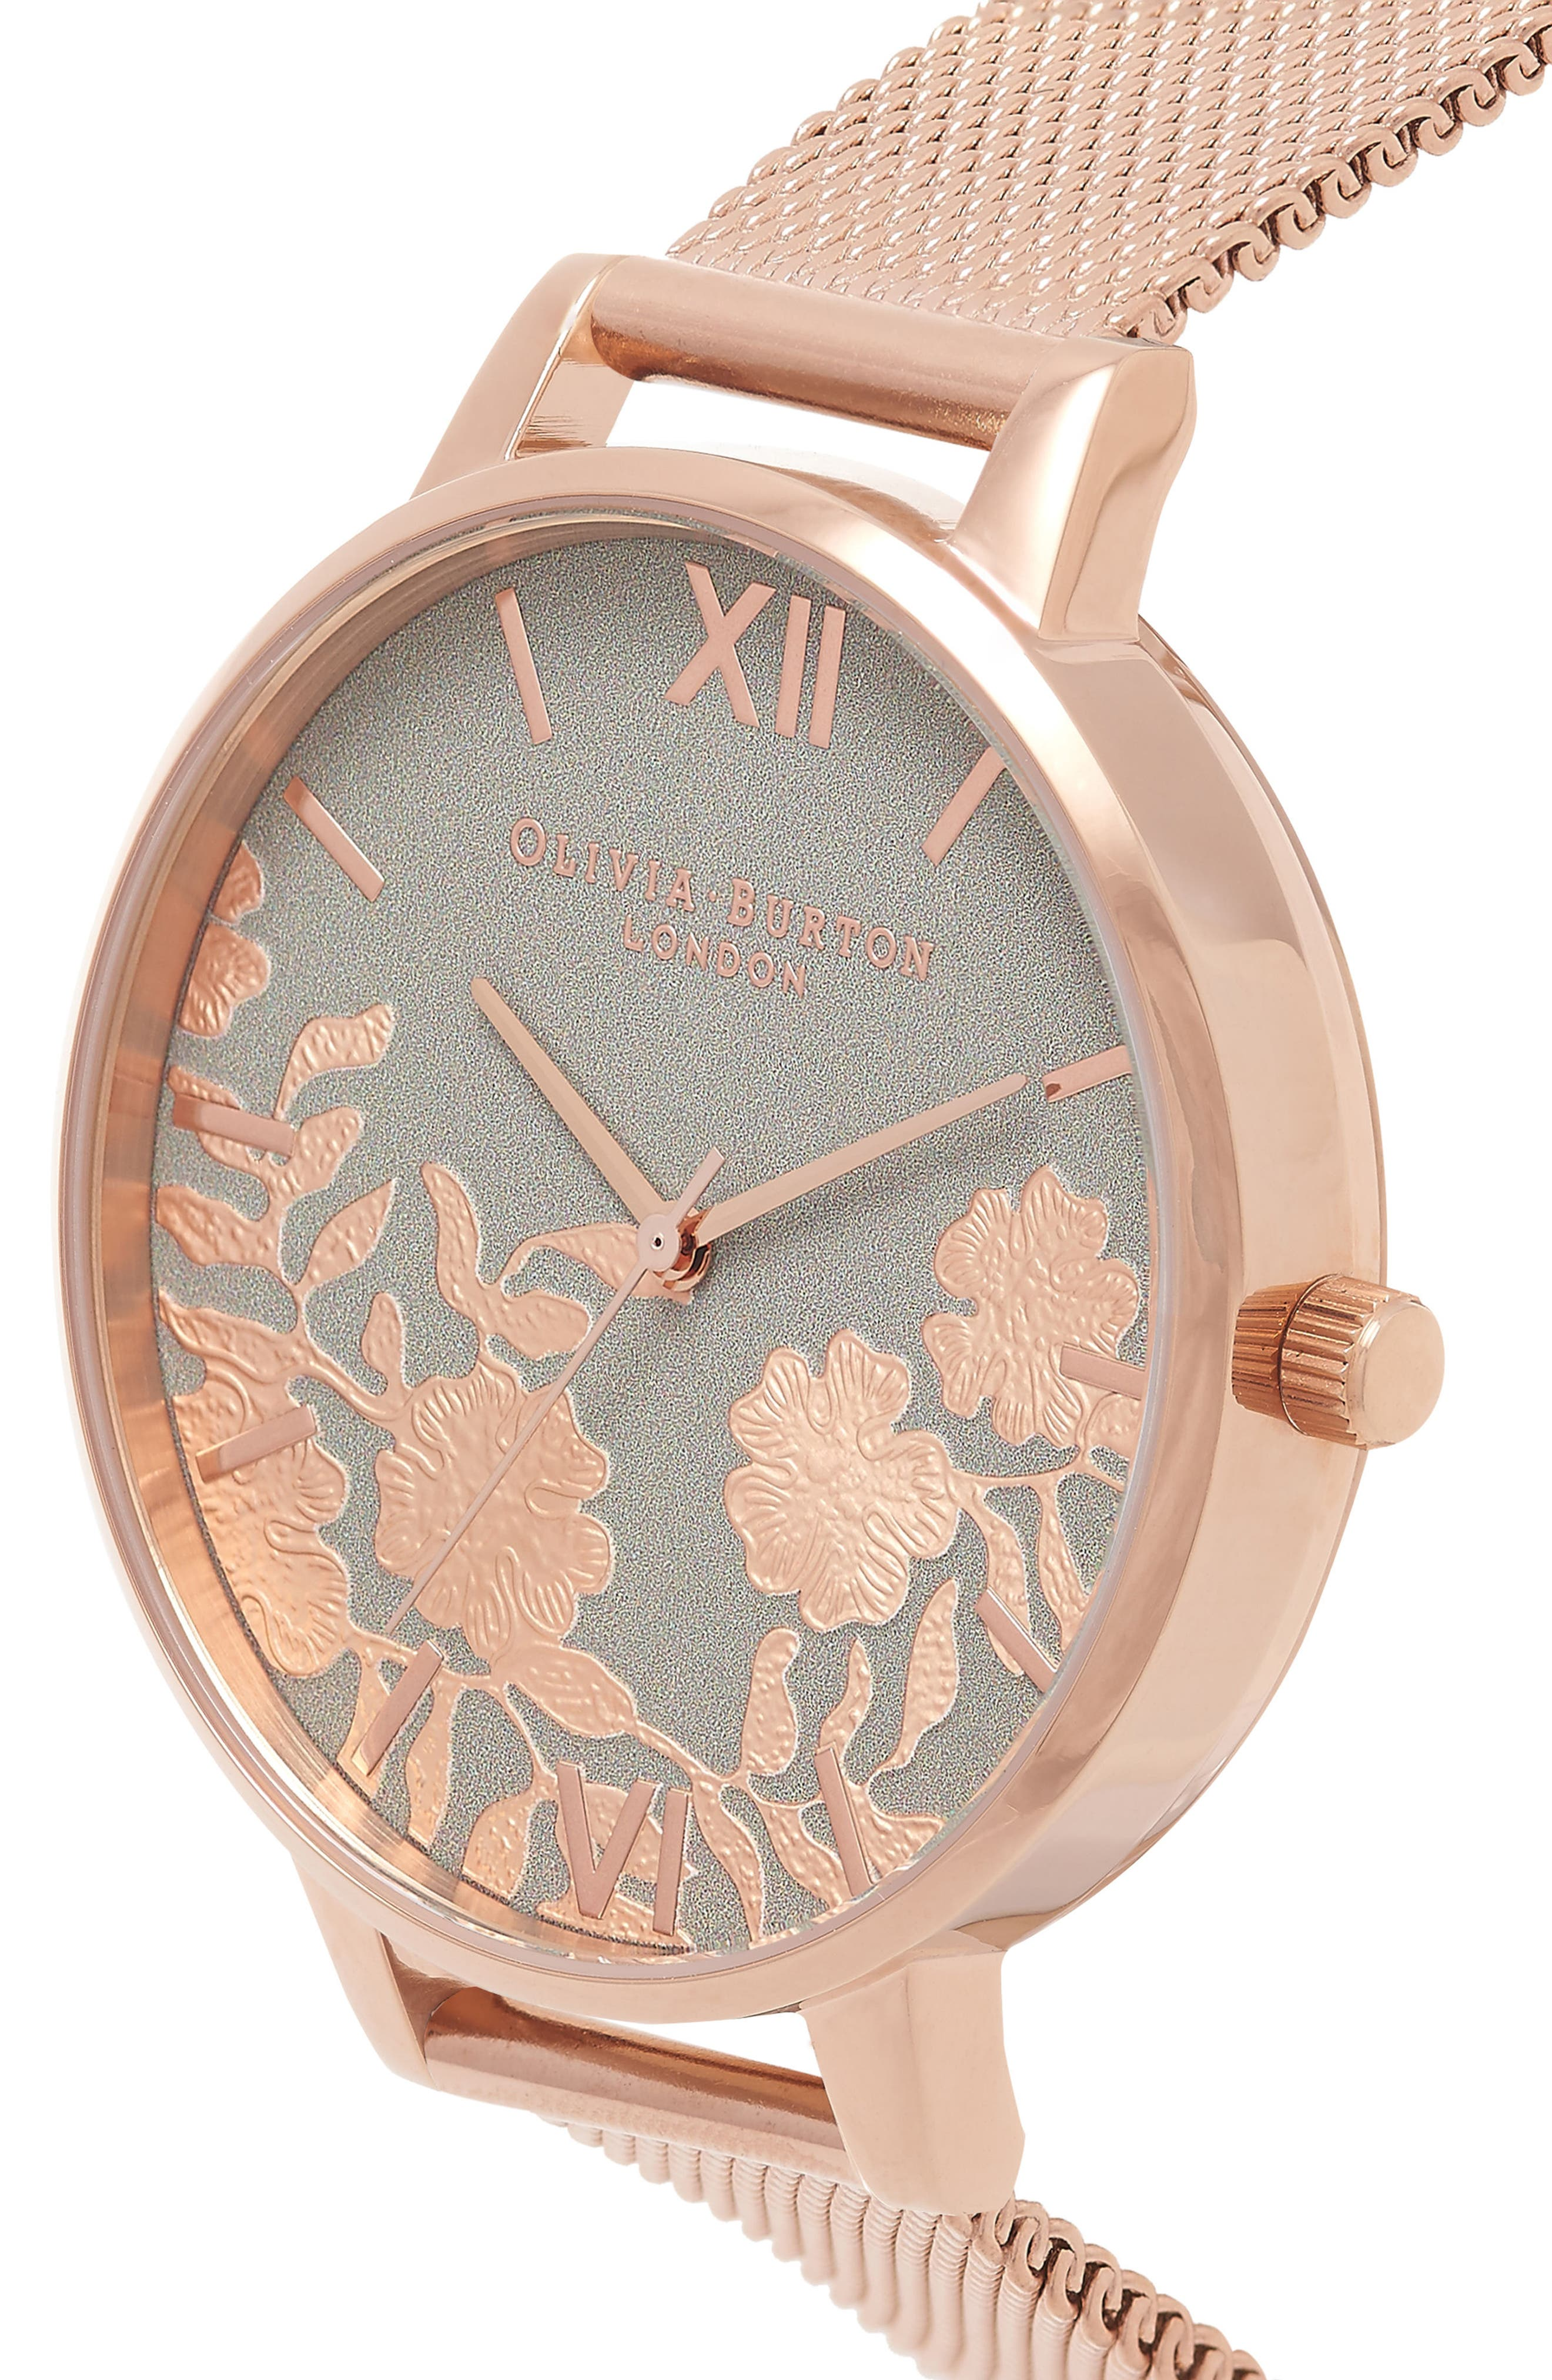 Lace Detail Mesh Strap Watch, 38mm,                             Alternate thumbnail 4, color,                             ROSE GOLD/ GREY/ ROSE GOLD